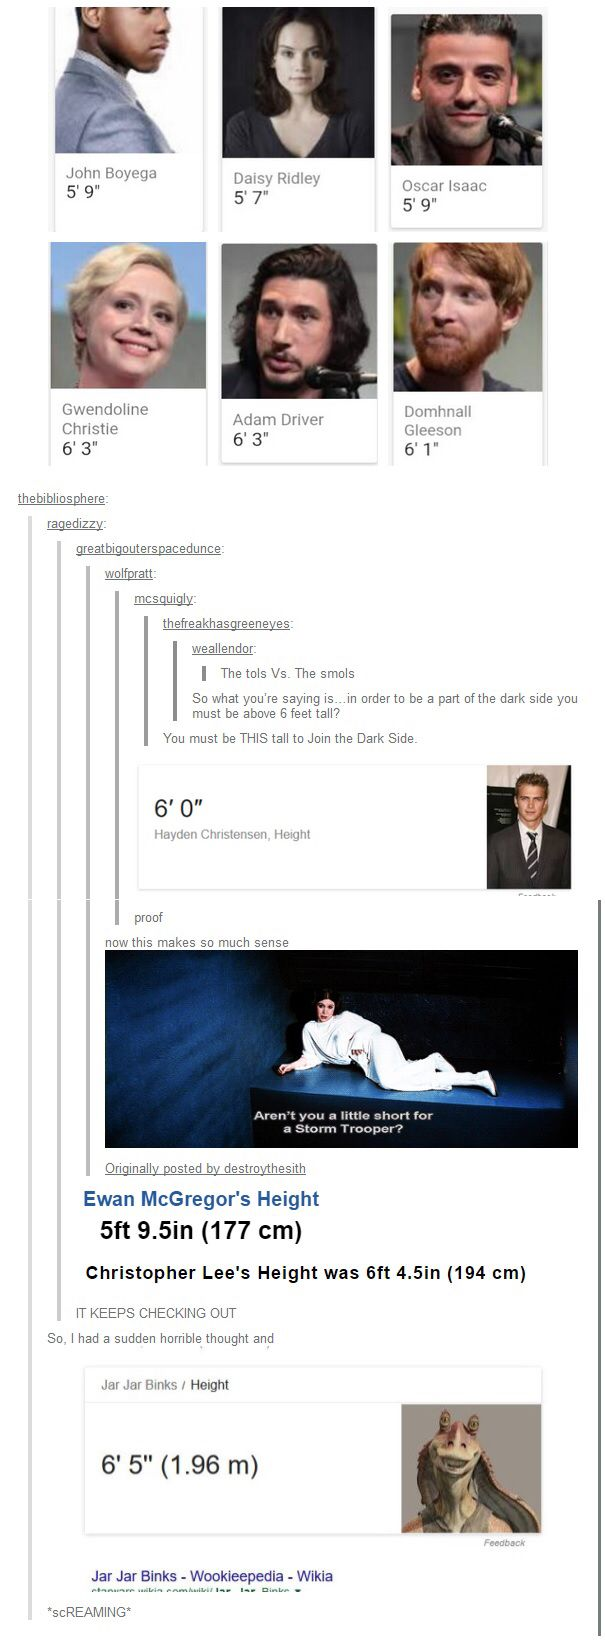 Oh my gosh, at the end!!  I am laughing so hard right now!